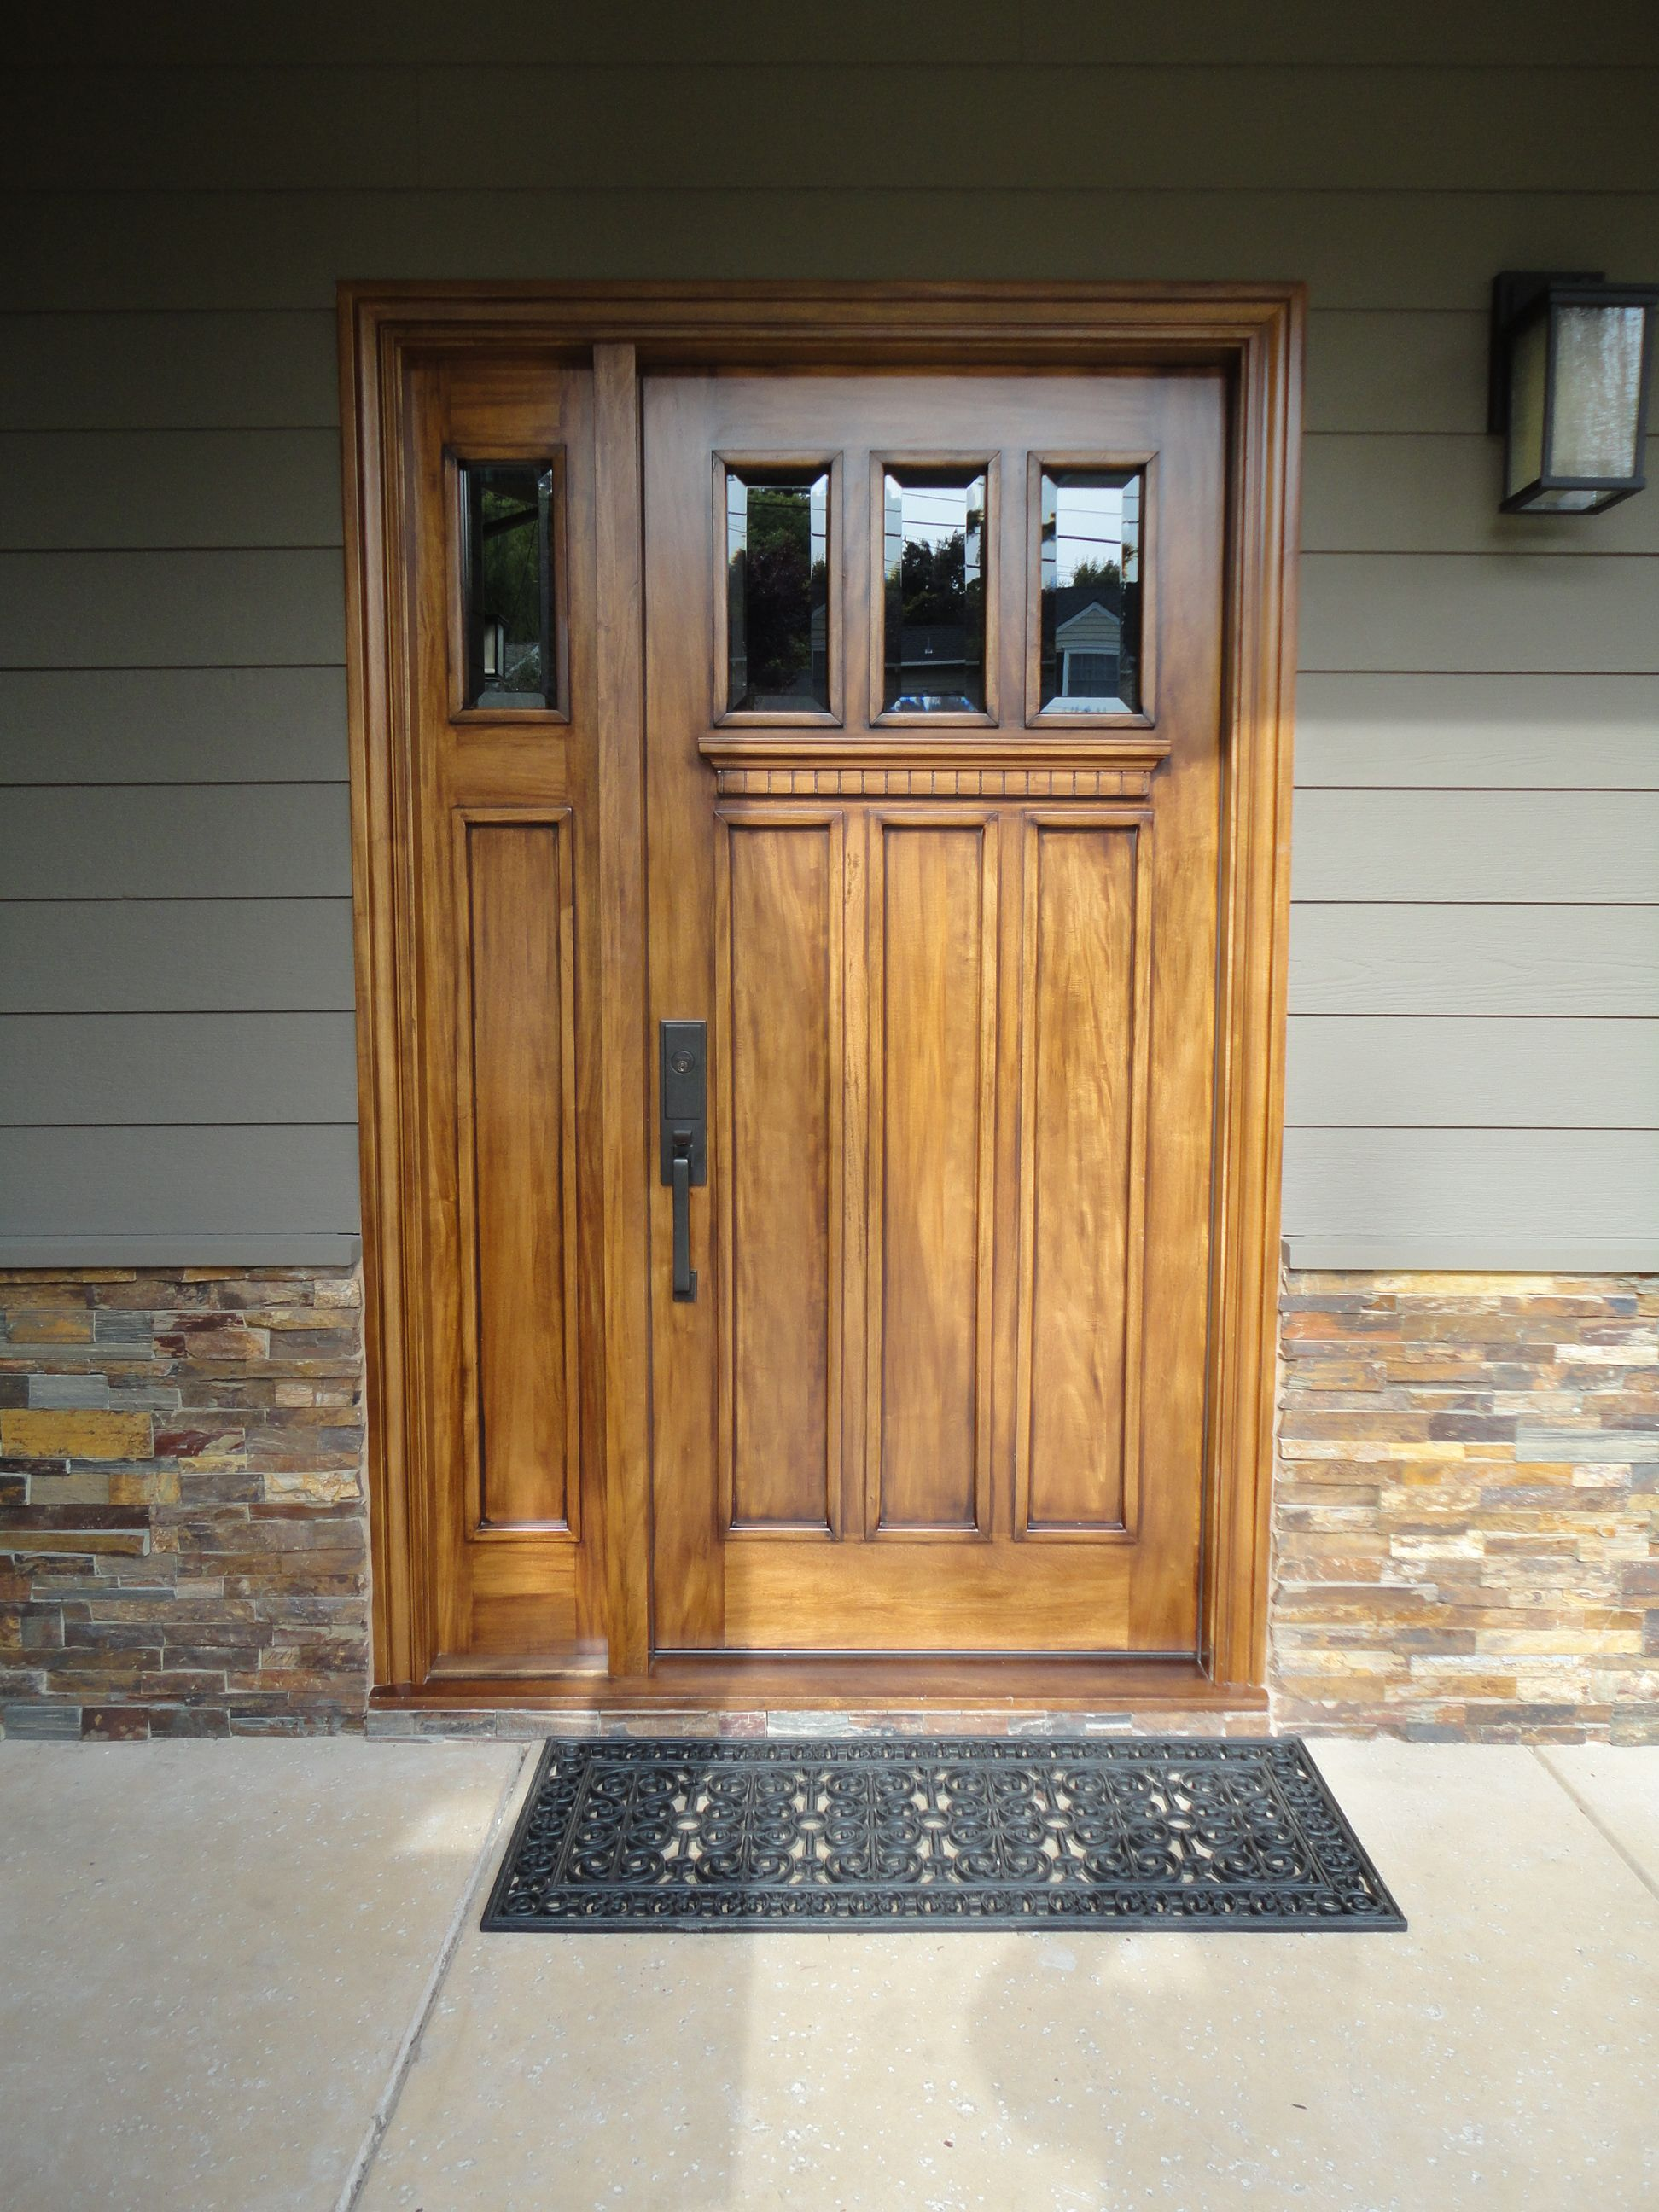 3 Light 3 Panel Craftsman Entry Door With One 1 Light 1 Panel Sidelight Entry Door With Sidelights Entry Doors Fiberglass Entry Doors